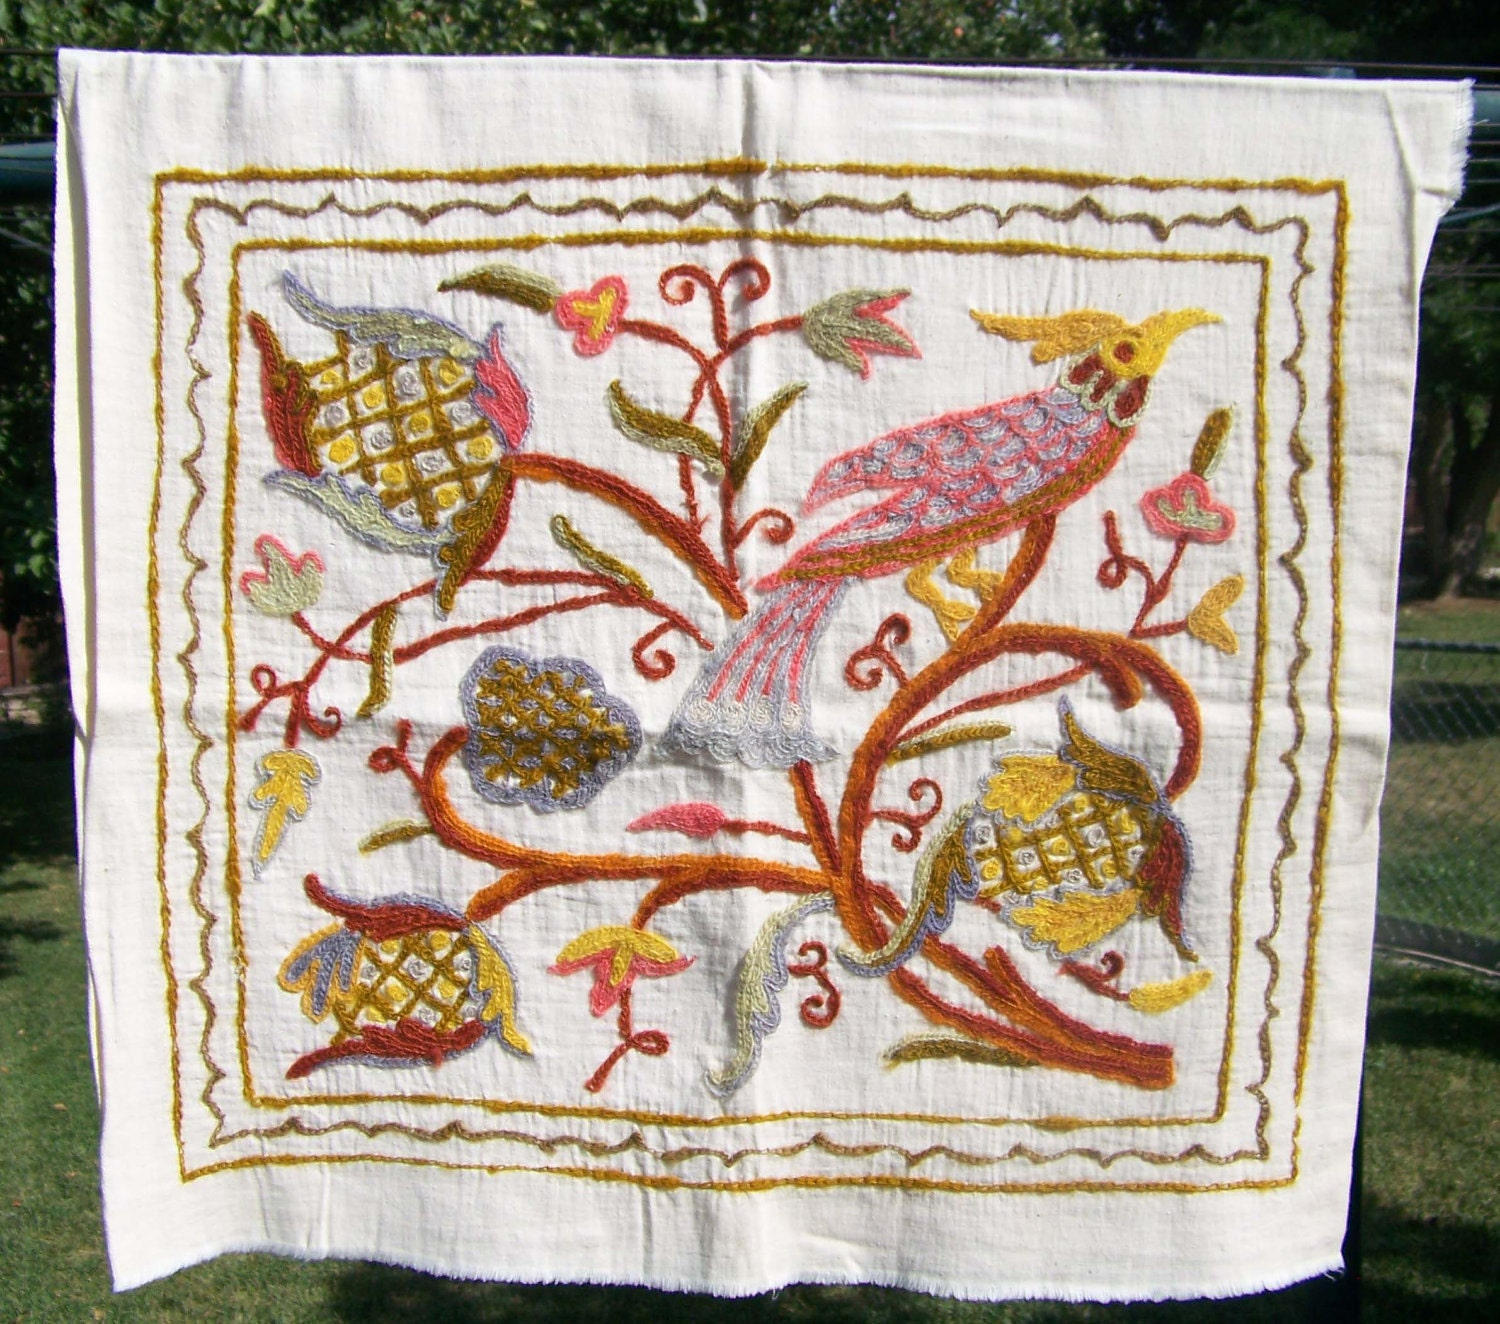 Vintage Crewel Work Embroidery Fabric Pillow Cover